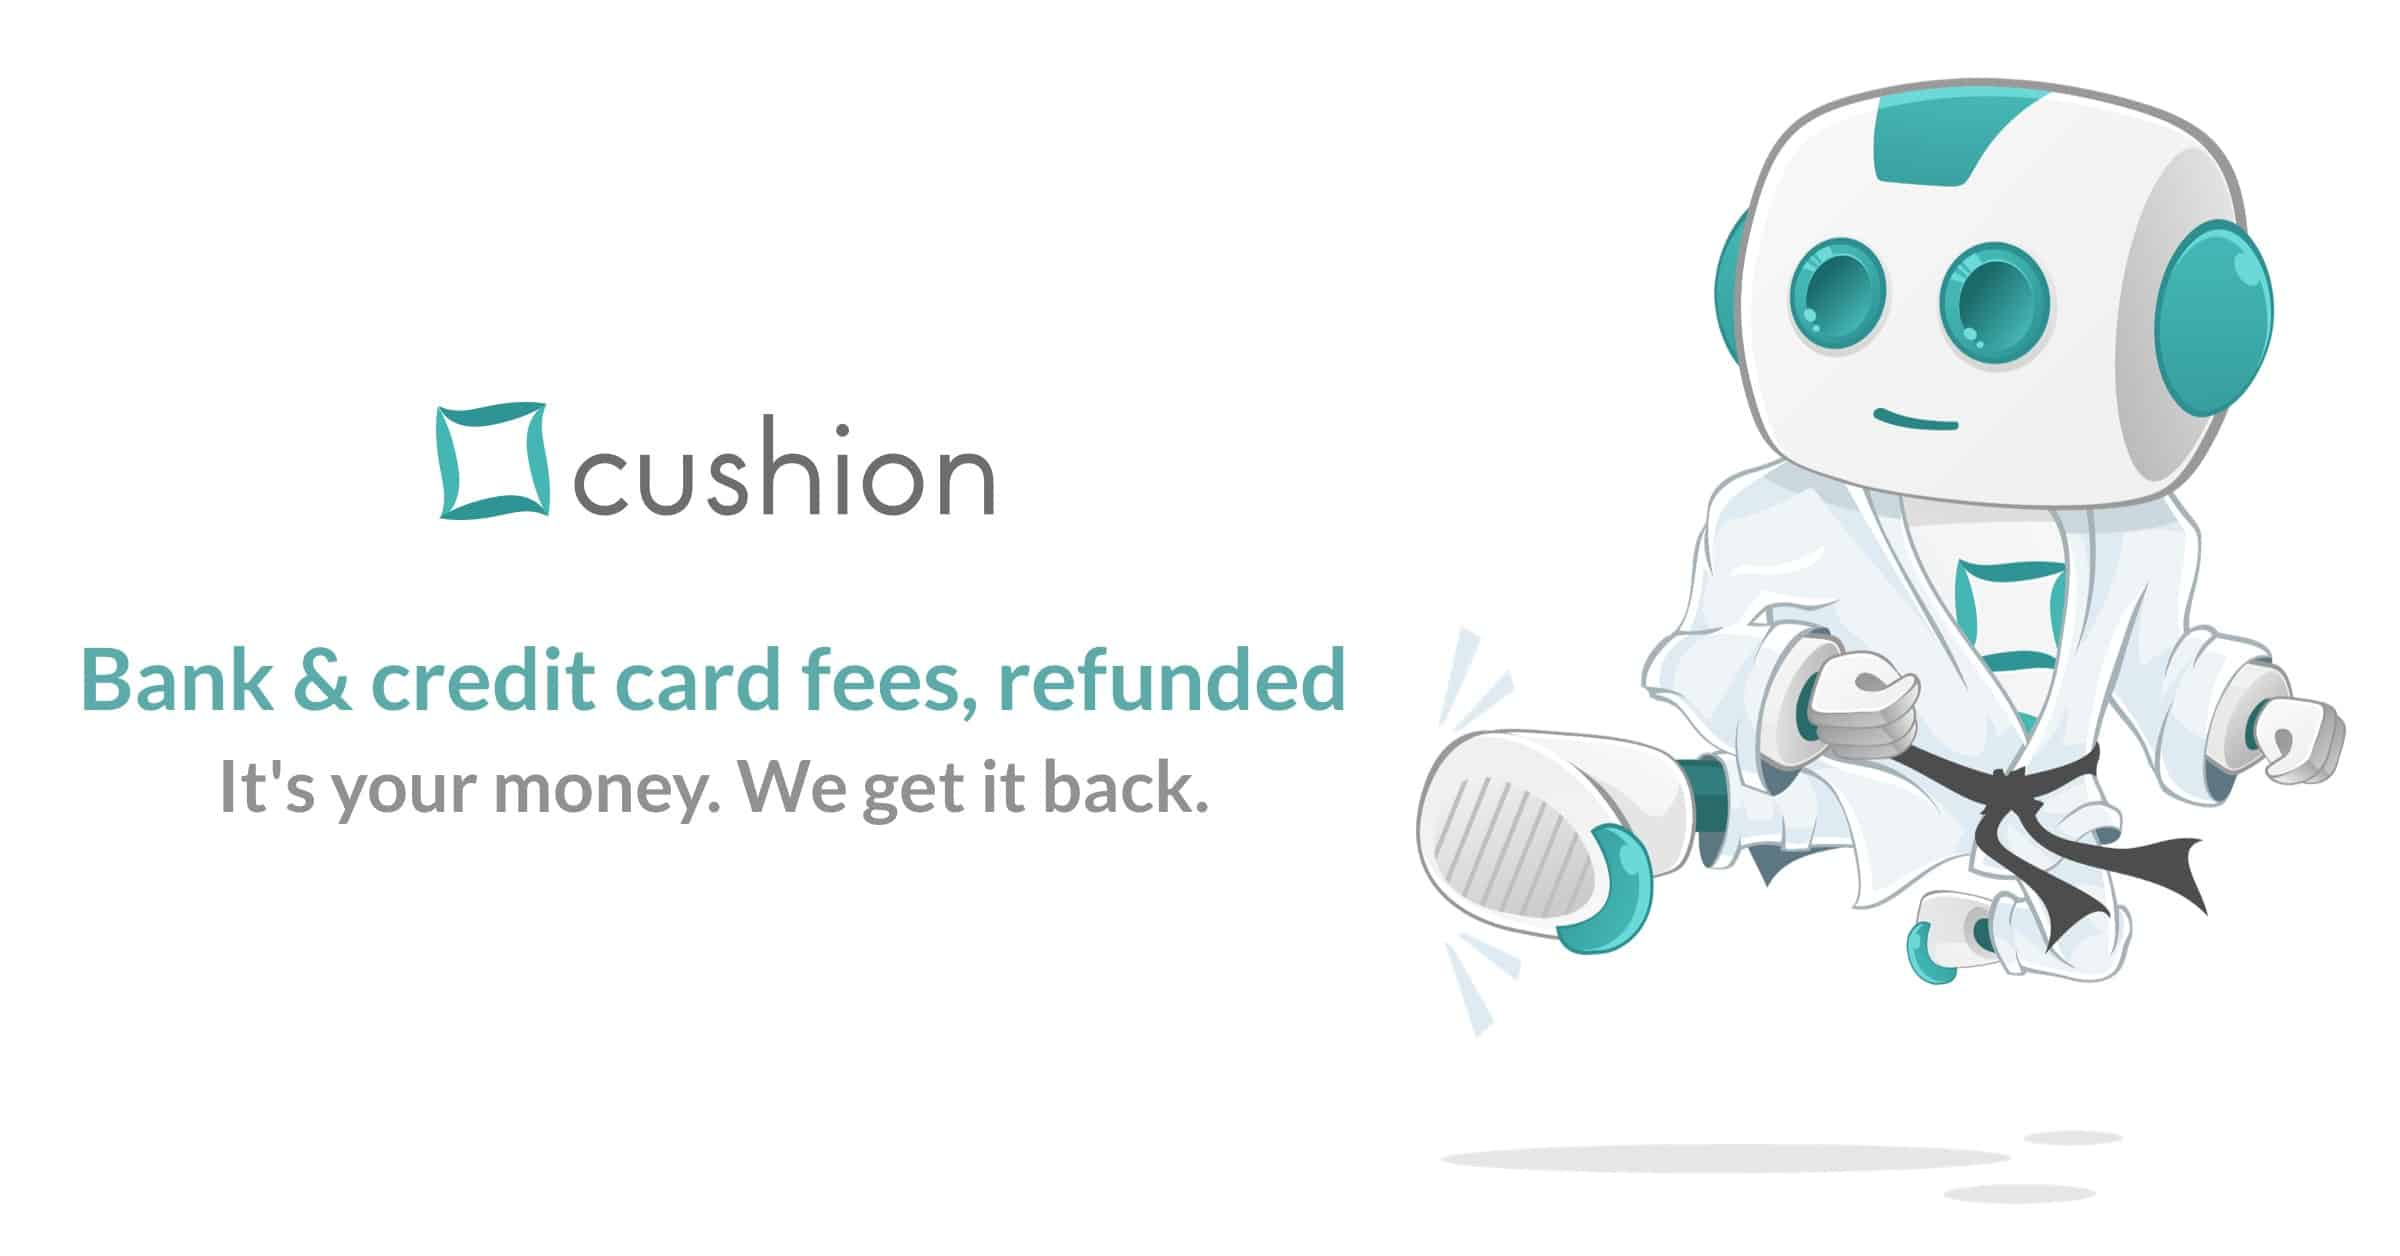 The Cushion App helps you to get your bank and credit card fees refunded.